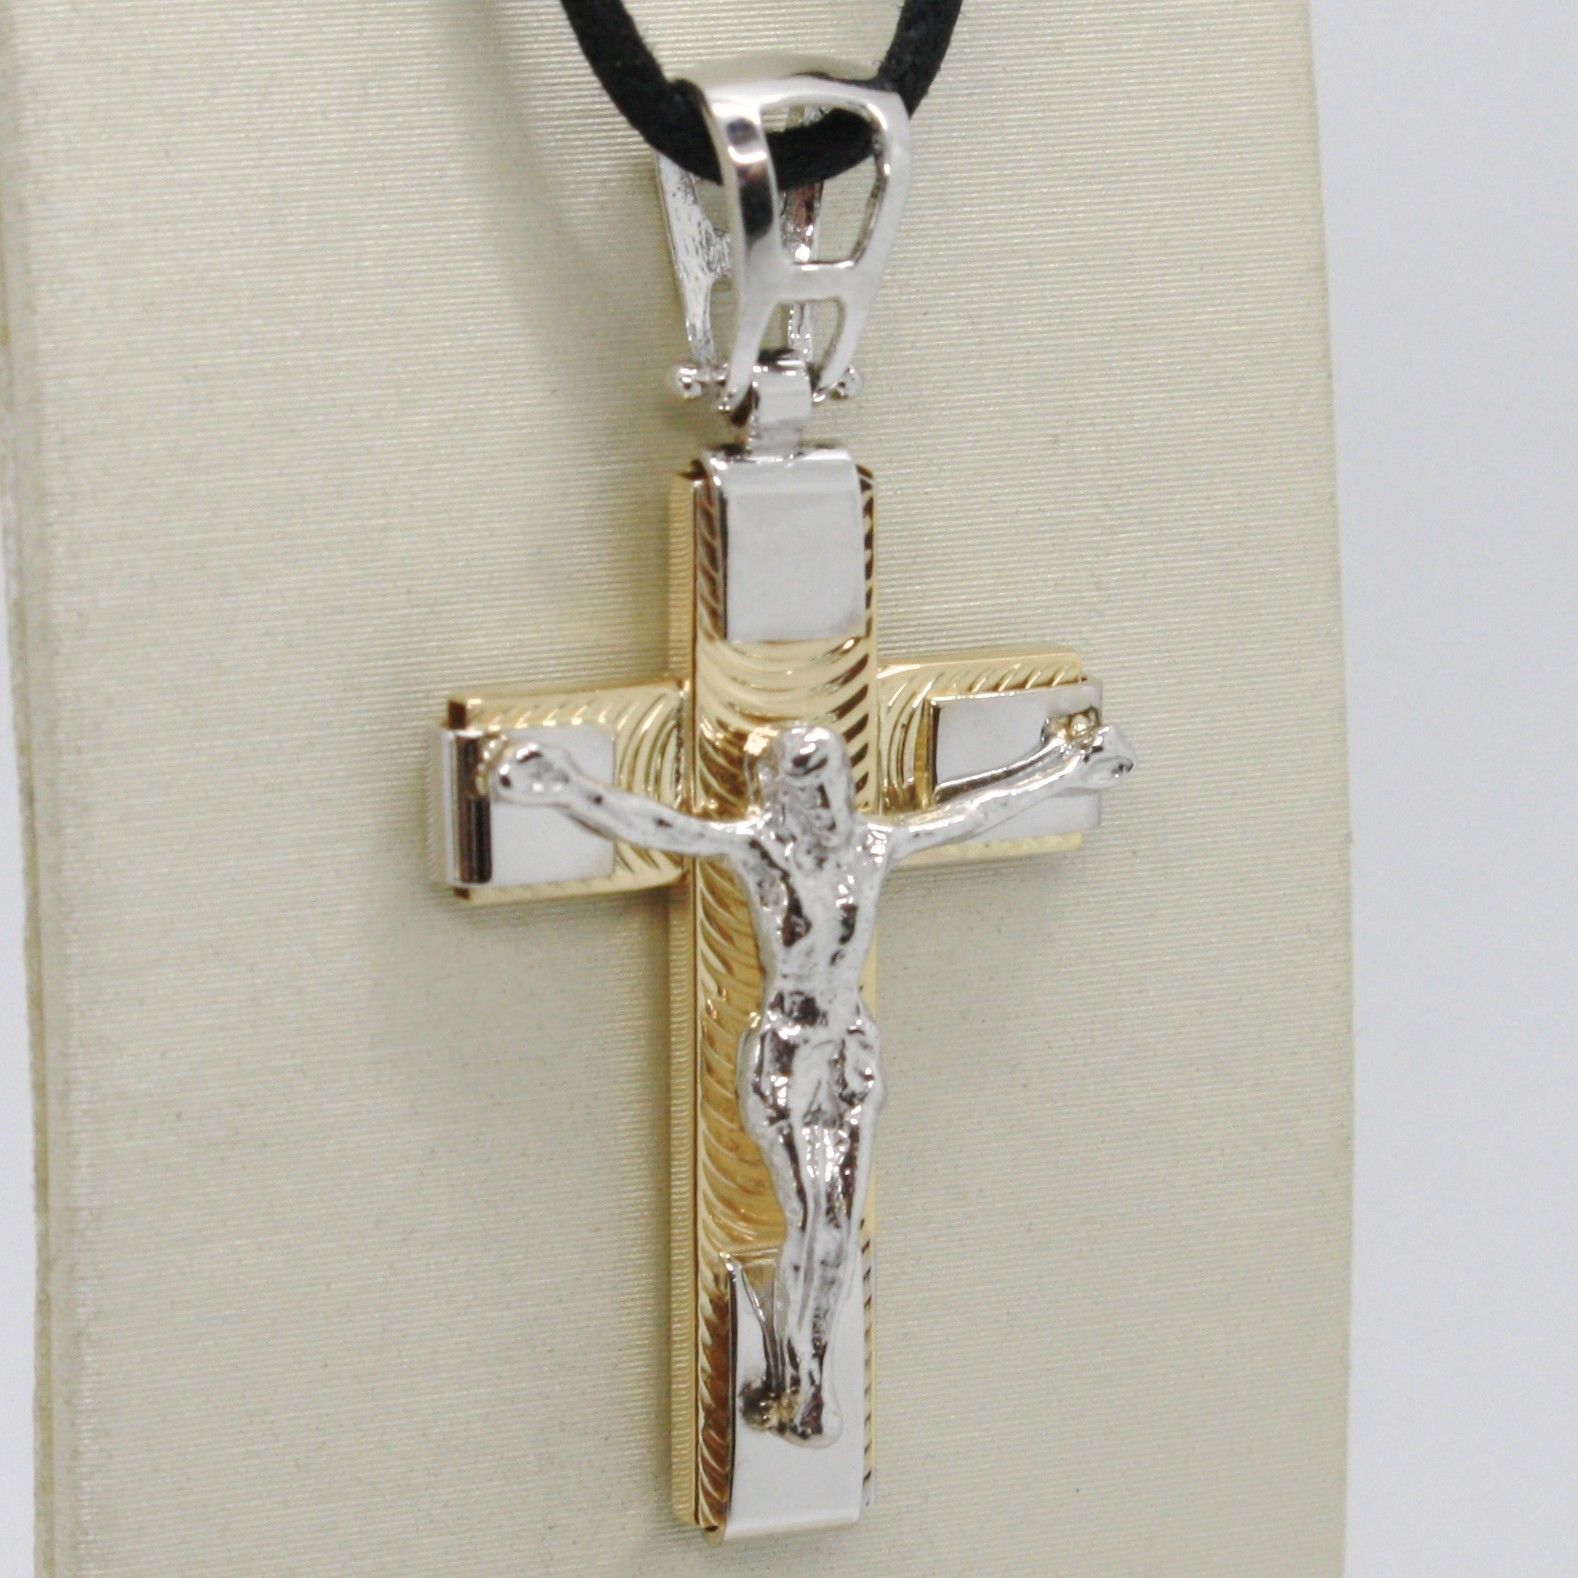 18K YELLOW WHITE GOLD JESUS CROSS PENDANT 1.4 INCHES, 3.5 CM, WORKED, ITALY MADE